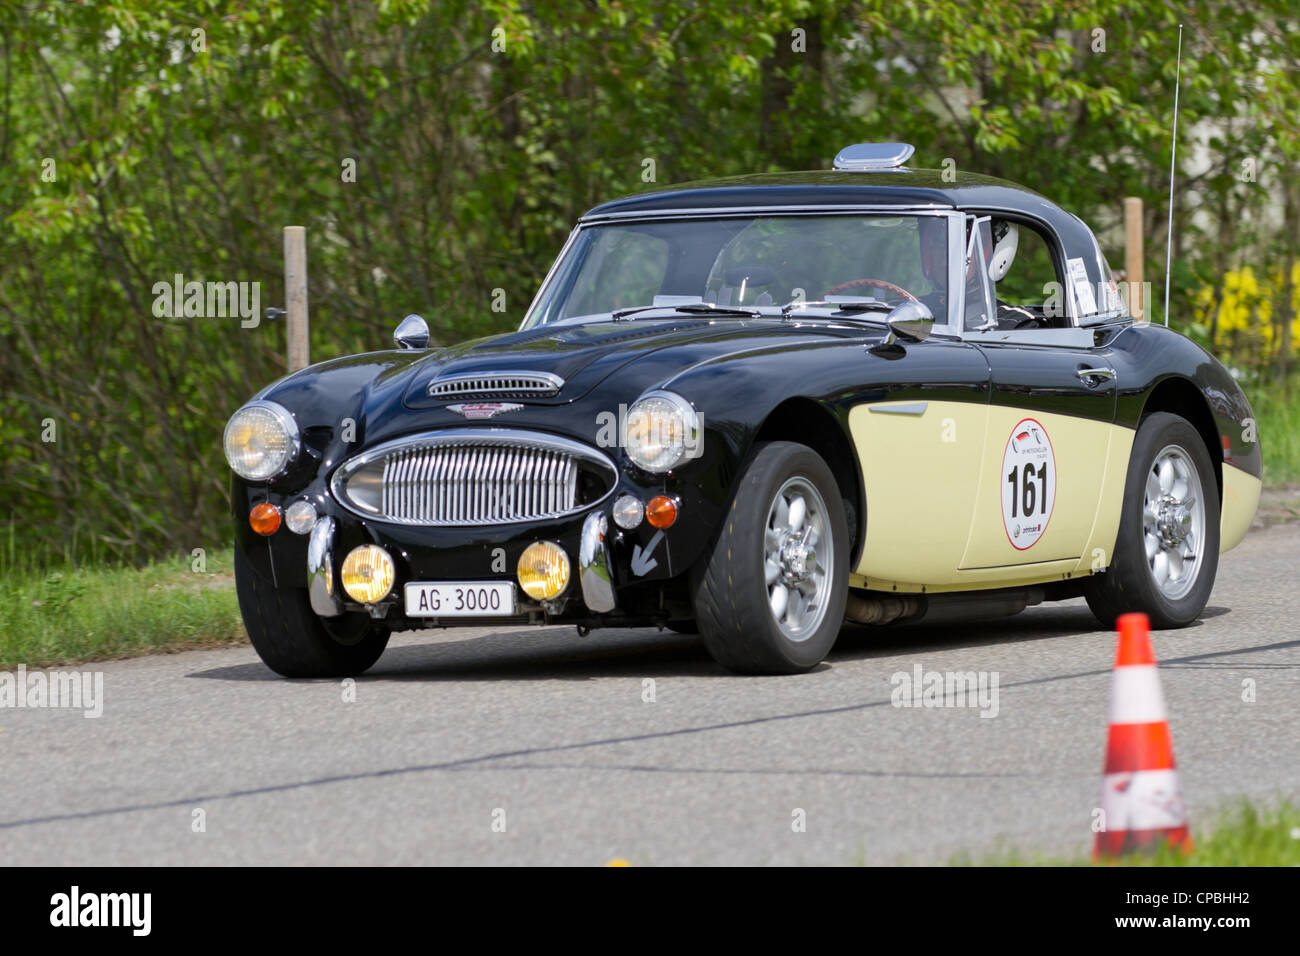 Vintage race touring car Austin Healey 3000 MK III from 1966 at ...